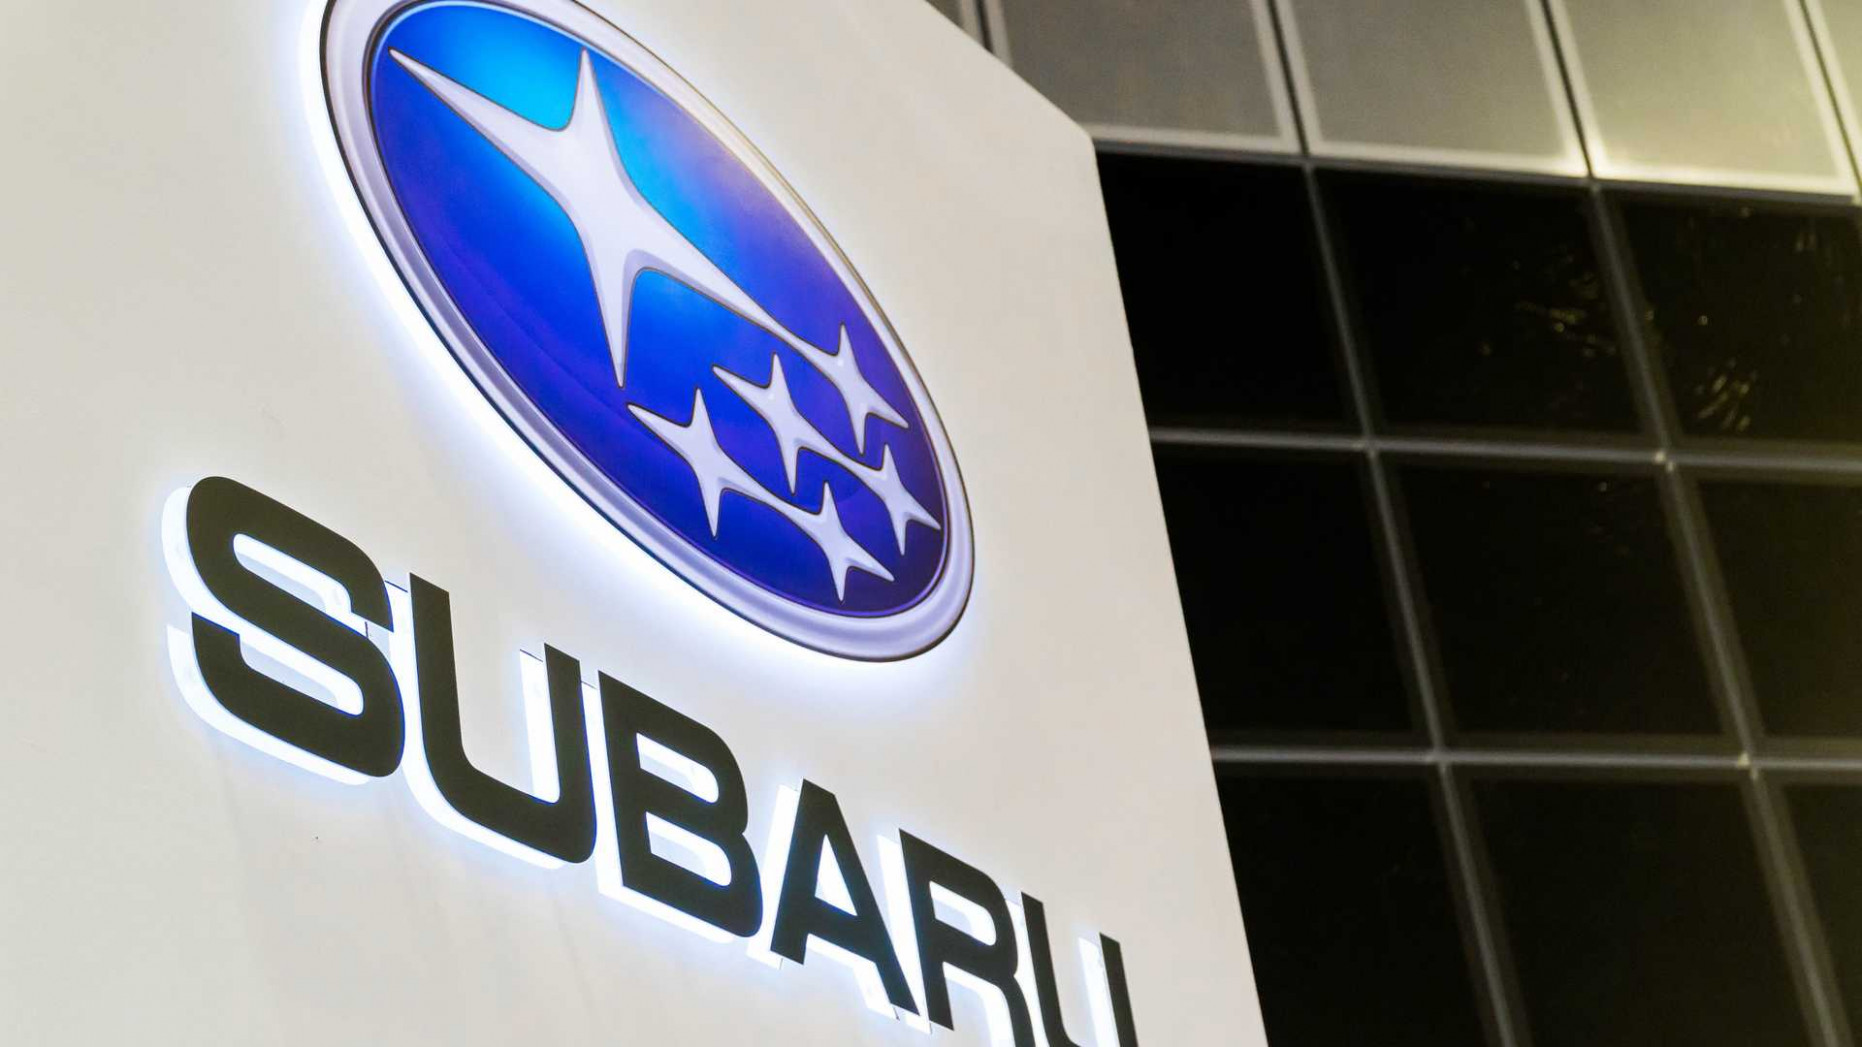 What Does A Subaru Extended Warranty Cover?